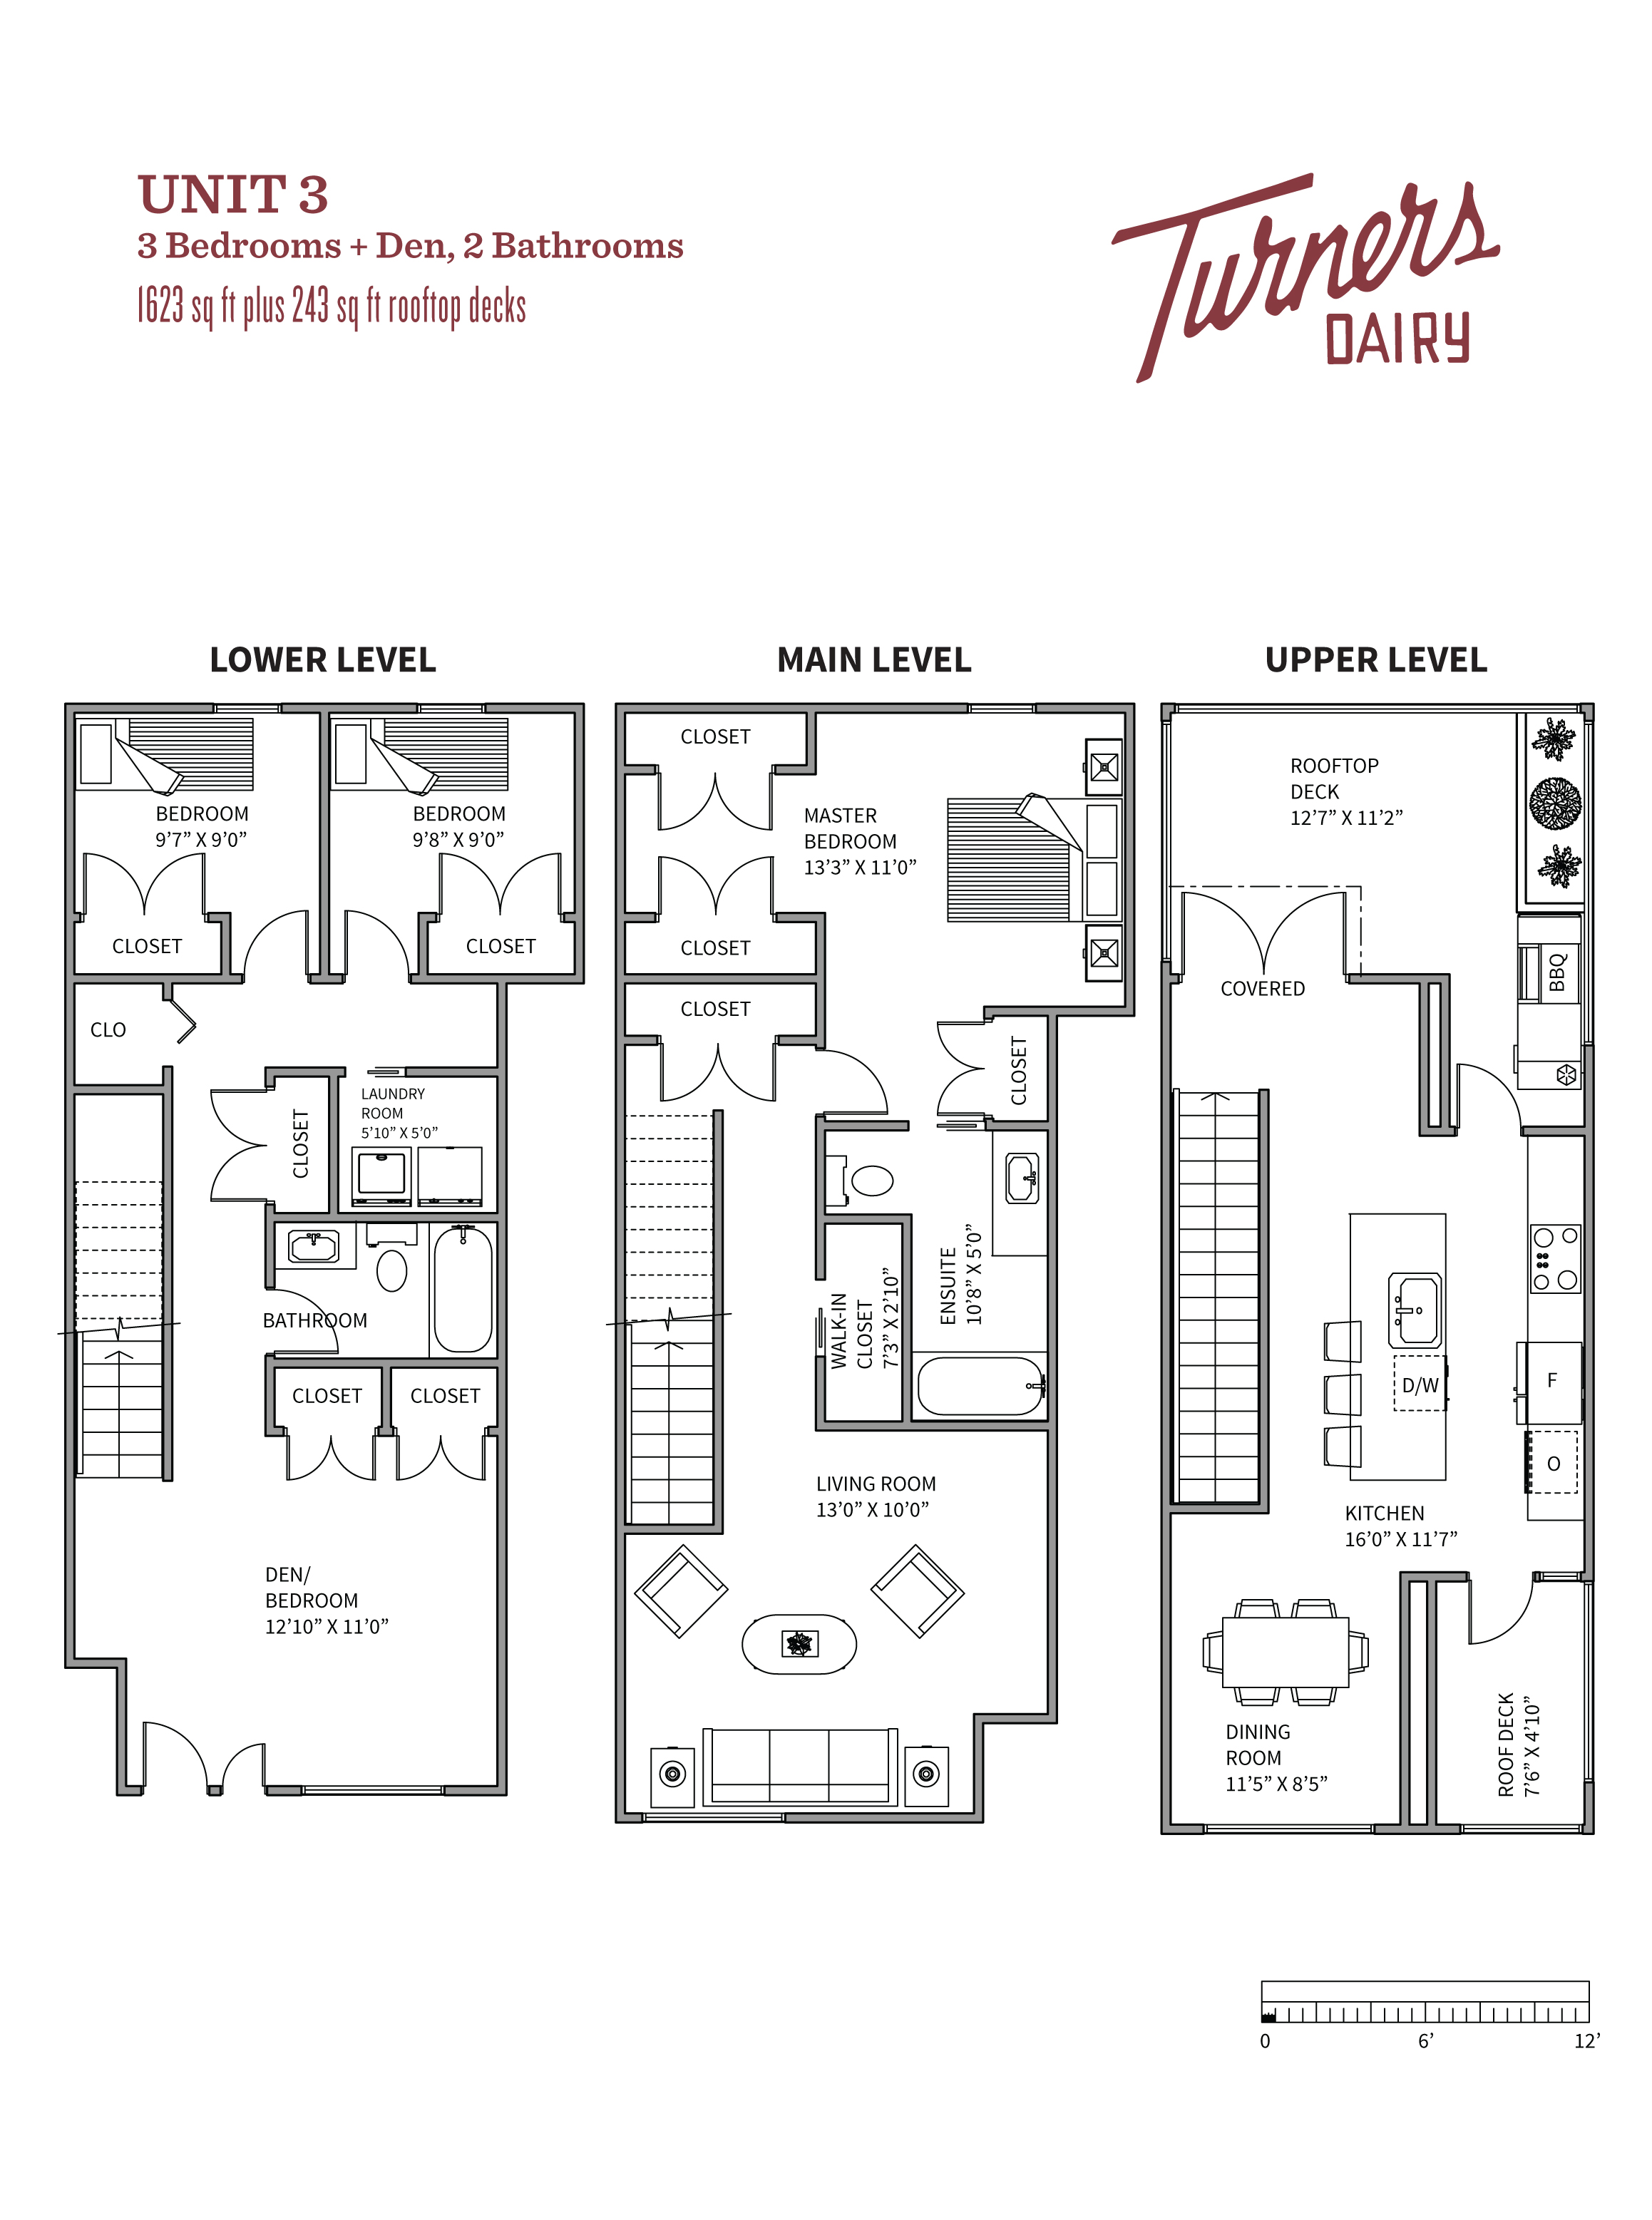 Thumbnail of Unit 3 floorplan of Turners Dairy Riley Park townhomes.